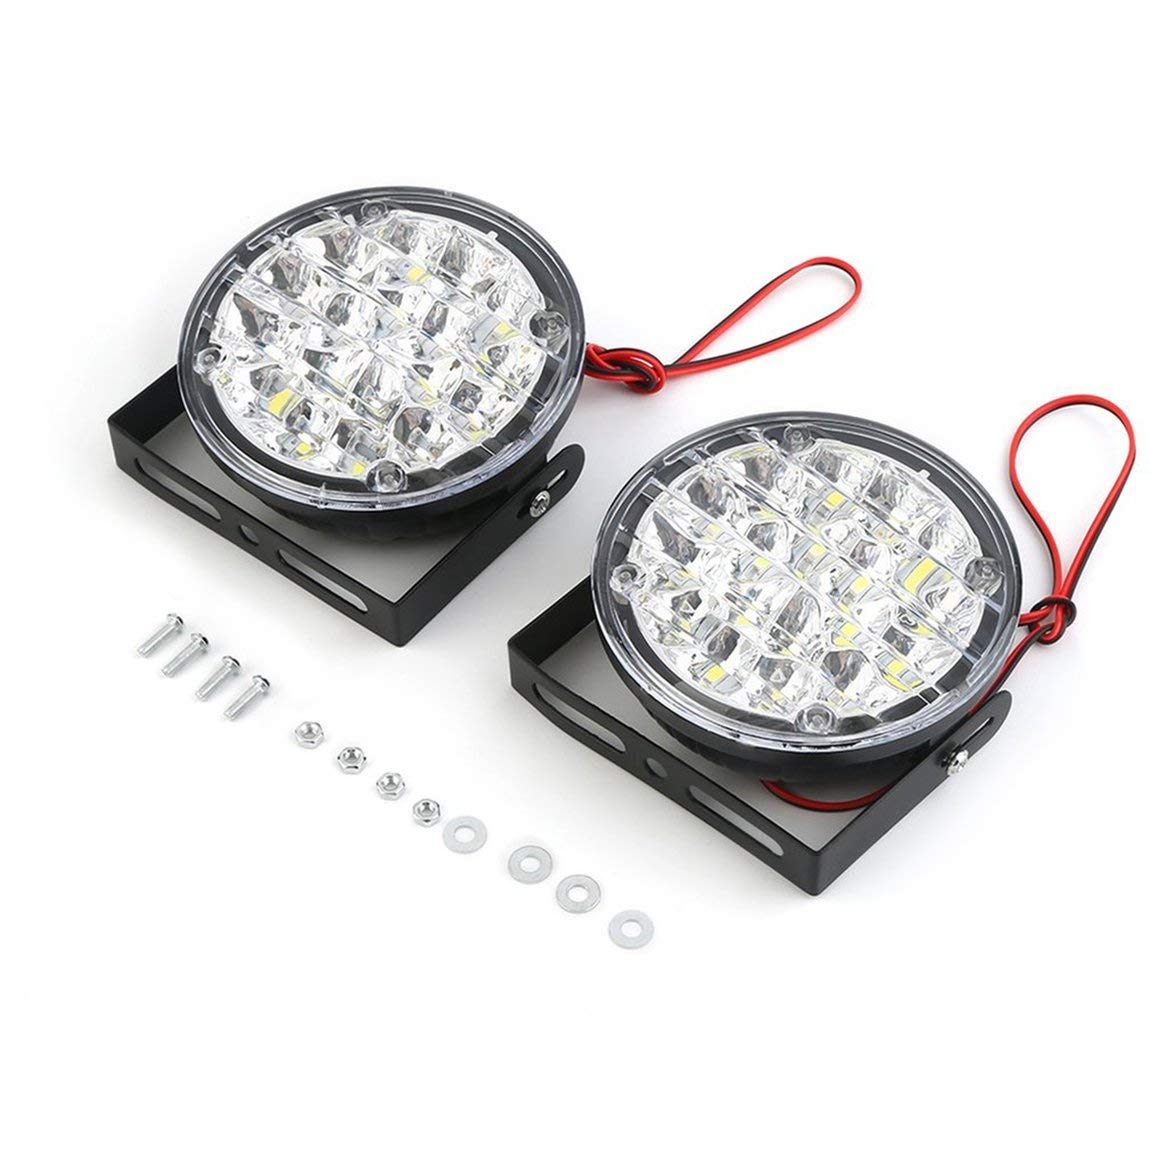 2pcs/Set Waterproof 24V 18 LEDs Round Shape Auto Car Fog Lamp Driving Daytime Running Light with Ultra Brightness SeniorMar